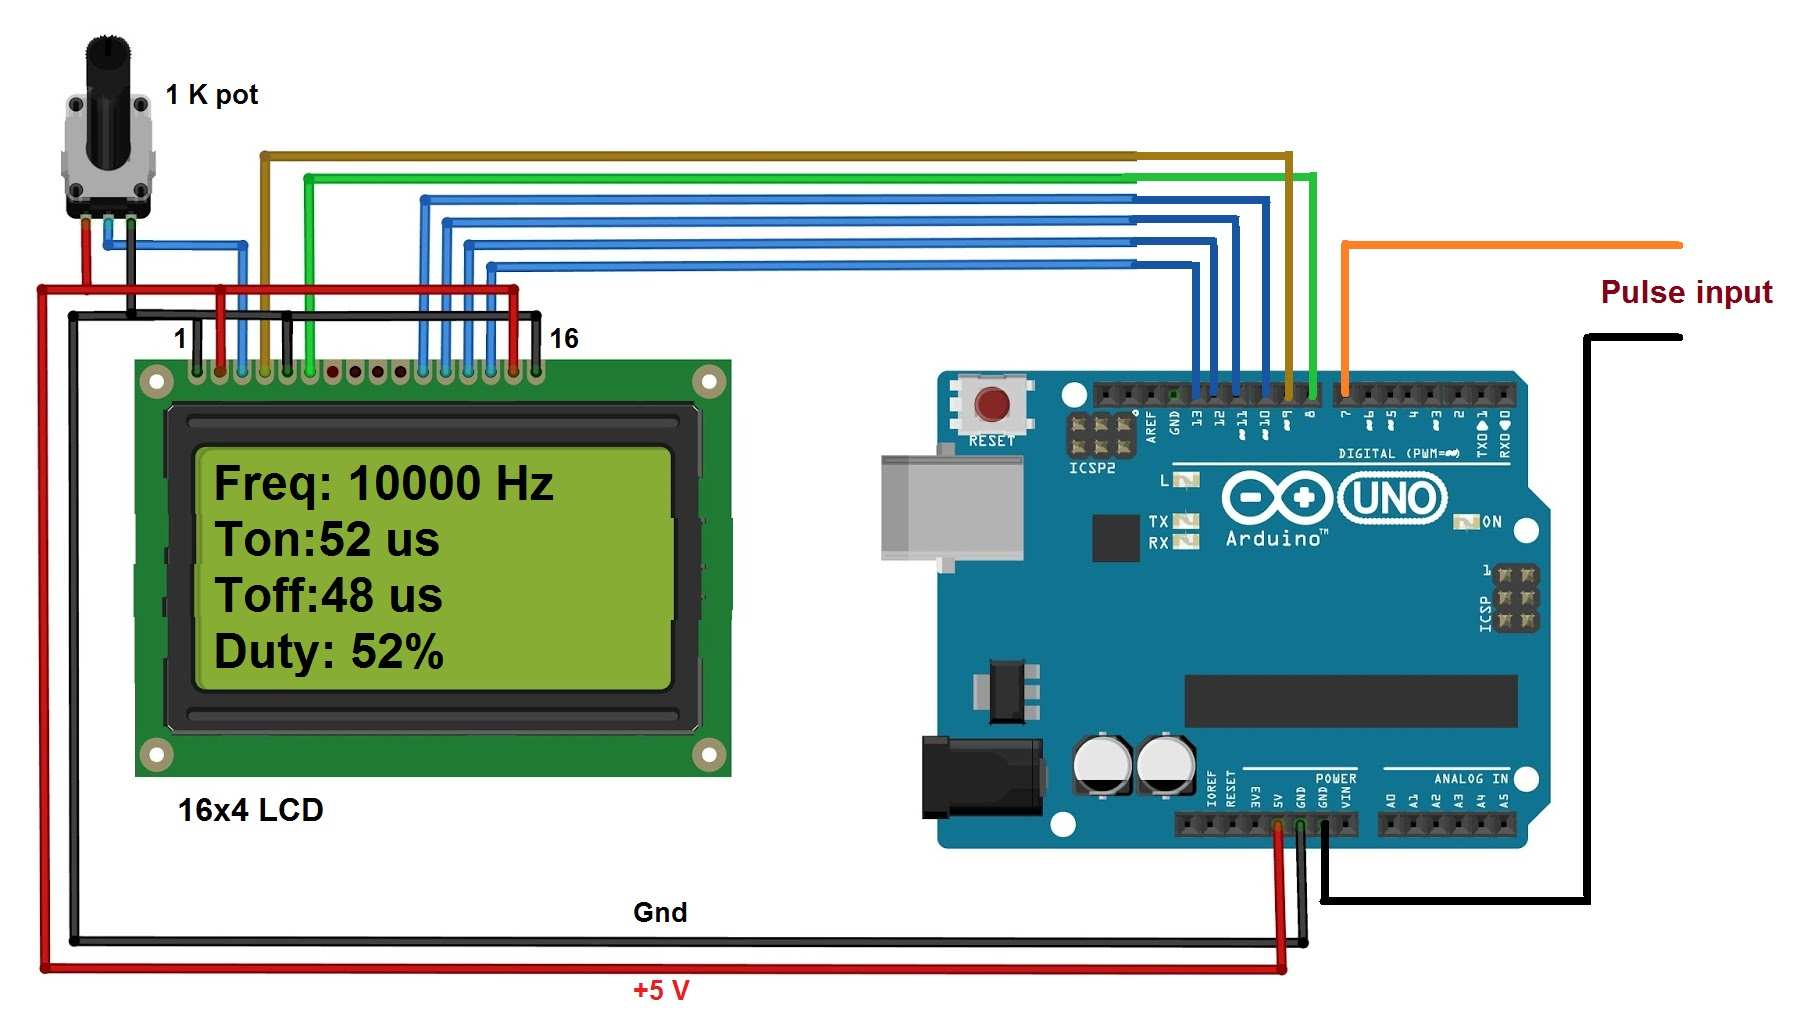 Frequency And Duty Cycle Measurement Using Arduino Arduino Project Hub